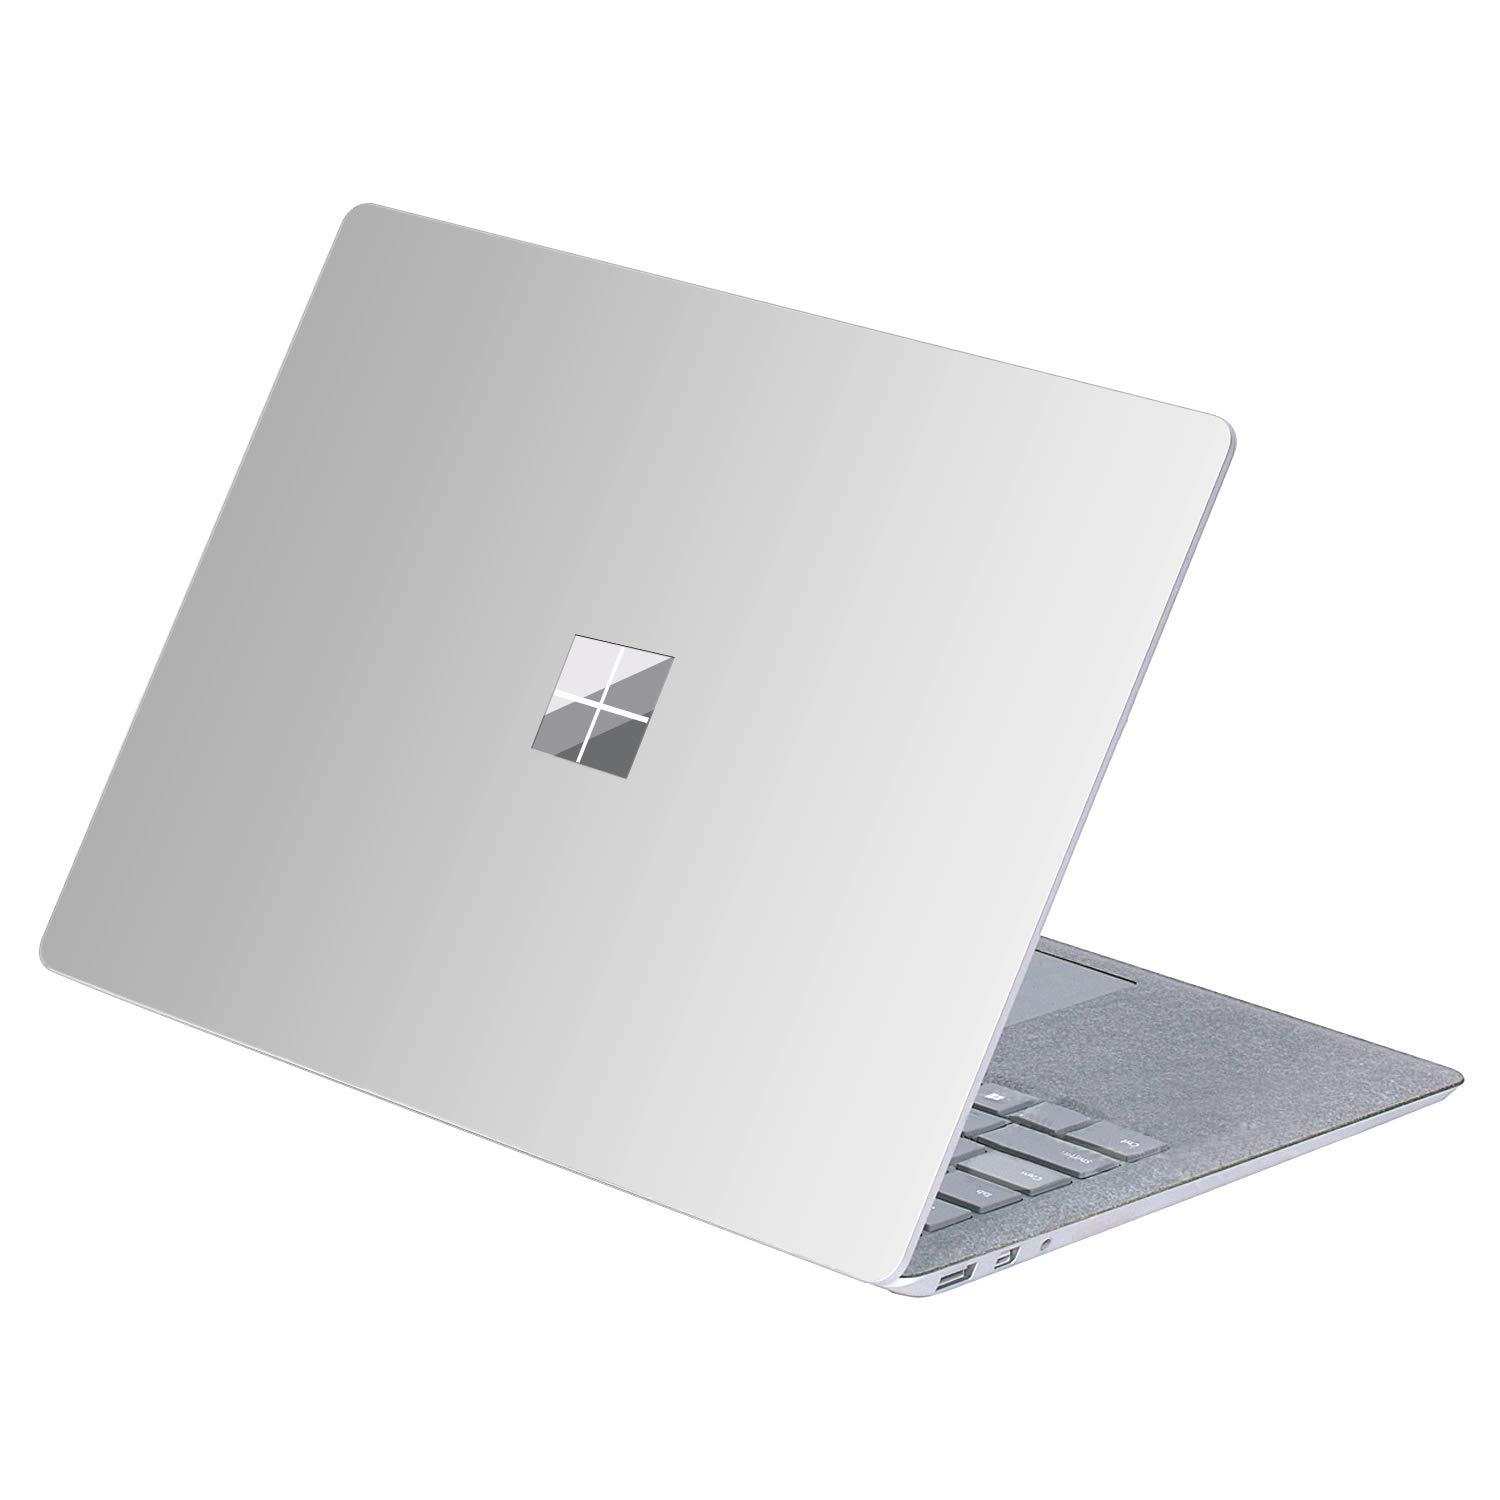 保護スキンカバープロテクター For Surface Laptop MASF5008 For Surface Laptop Decal - Silver Color B0771R8CN6